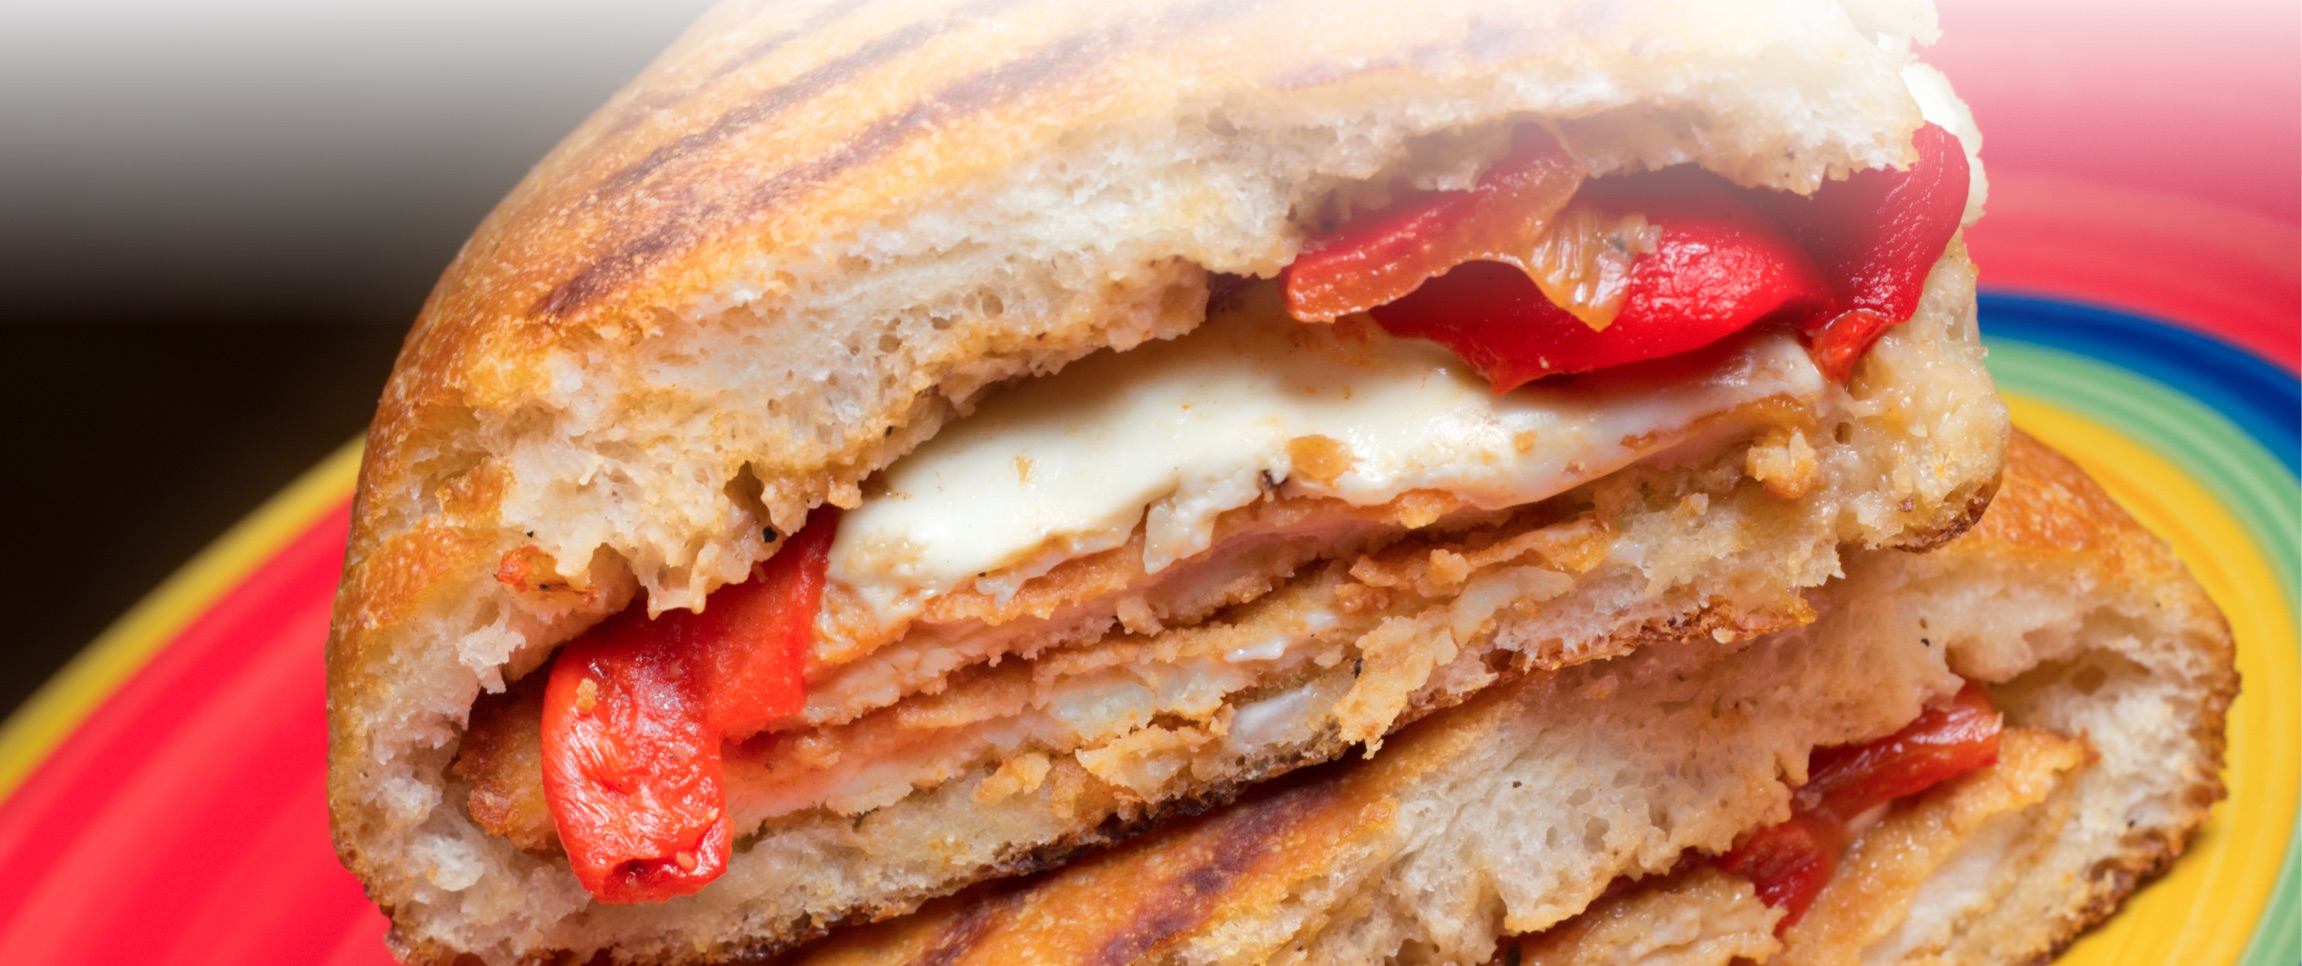 Chicken and Roasted Red Pepper Panini